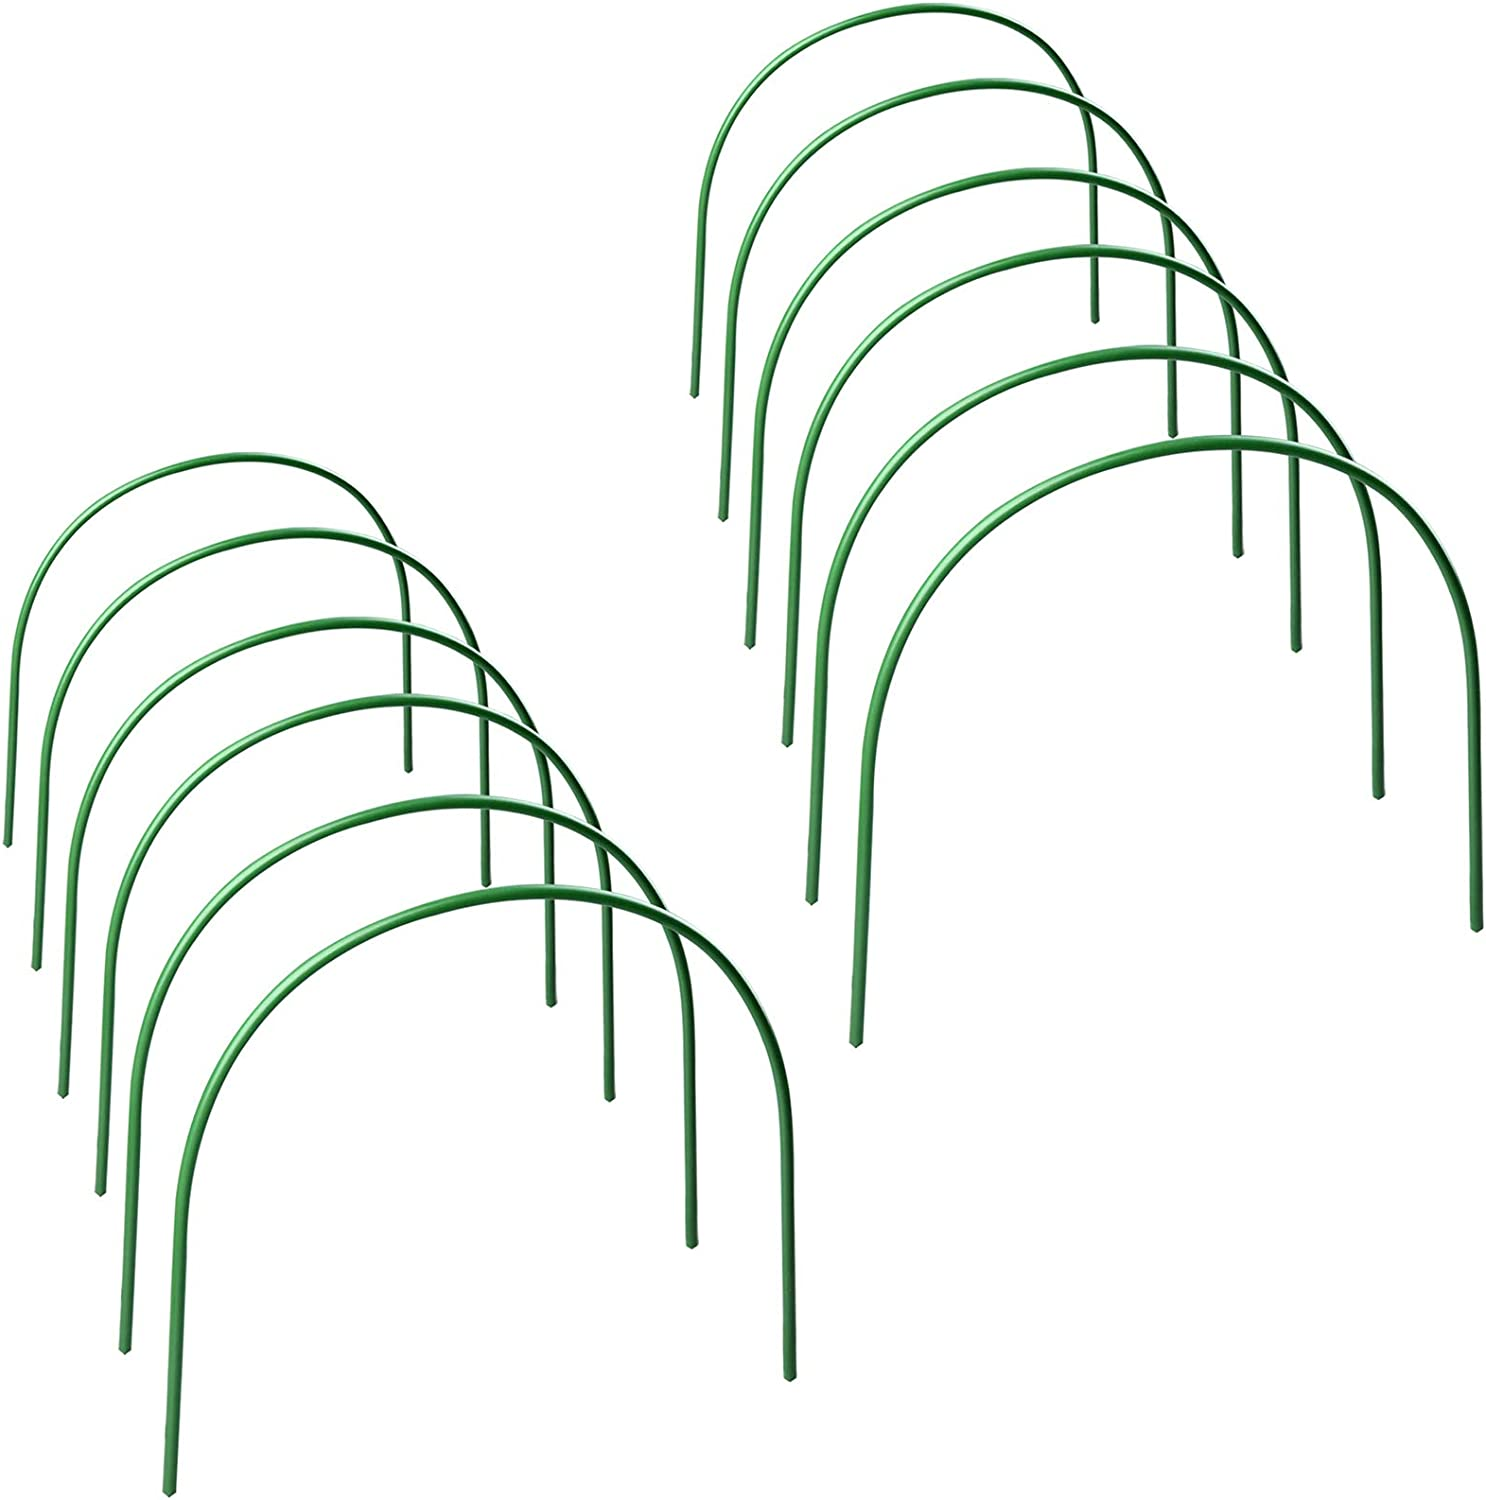 INIFLM 12-Pack Greenhouse Support Hoops, Rust-Free 4ft Long Steel with Plastic Coated Hoops Garden Grow Tunnel Garden Support Hoops